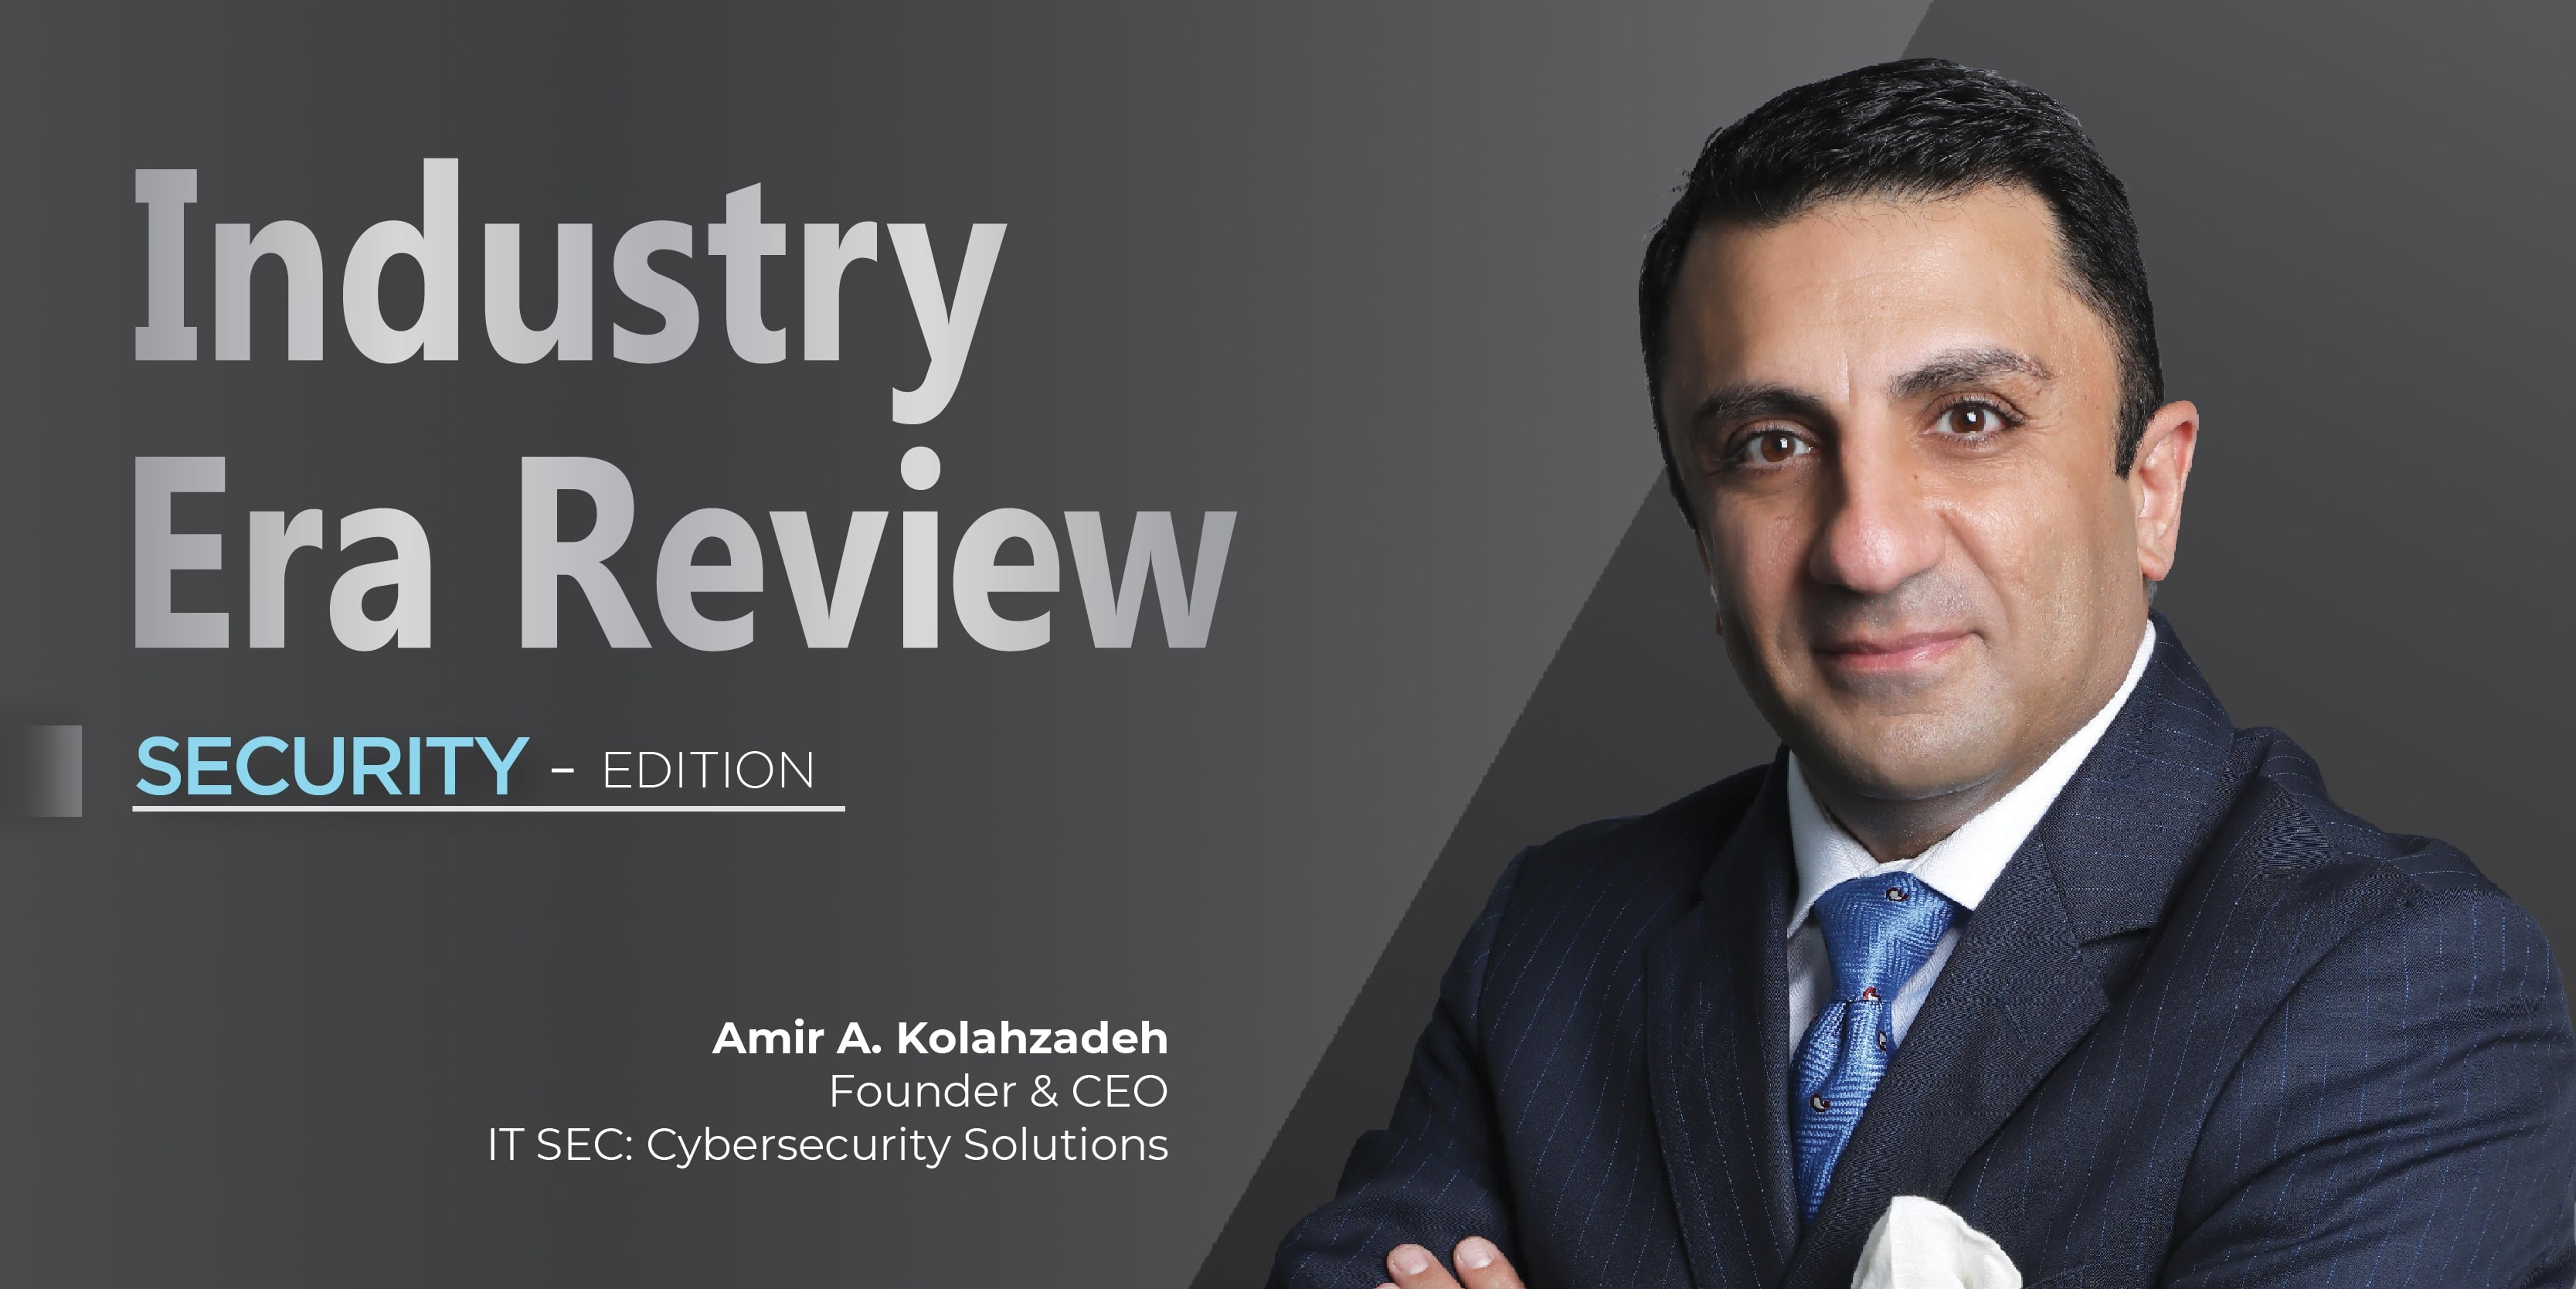 ITSEC #1 on the Top 10 Best Cybersecurity Solutions Providers of 2021 by Industry Era Review Magazine.